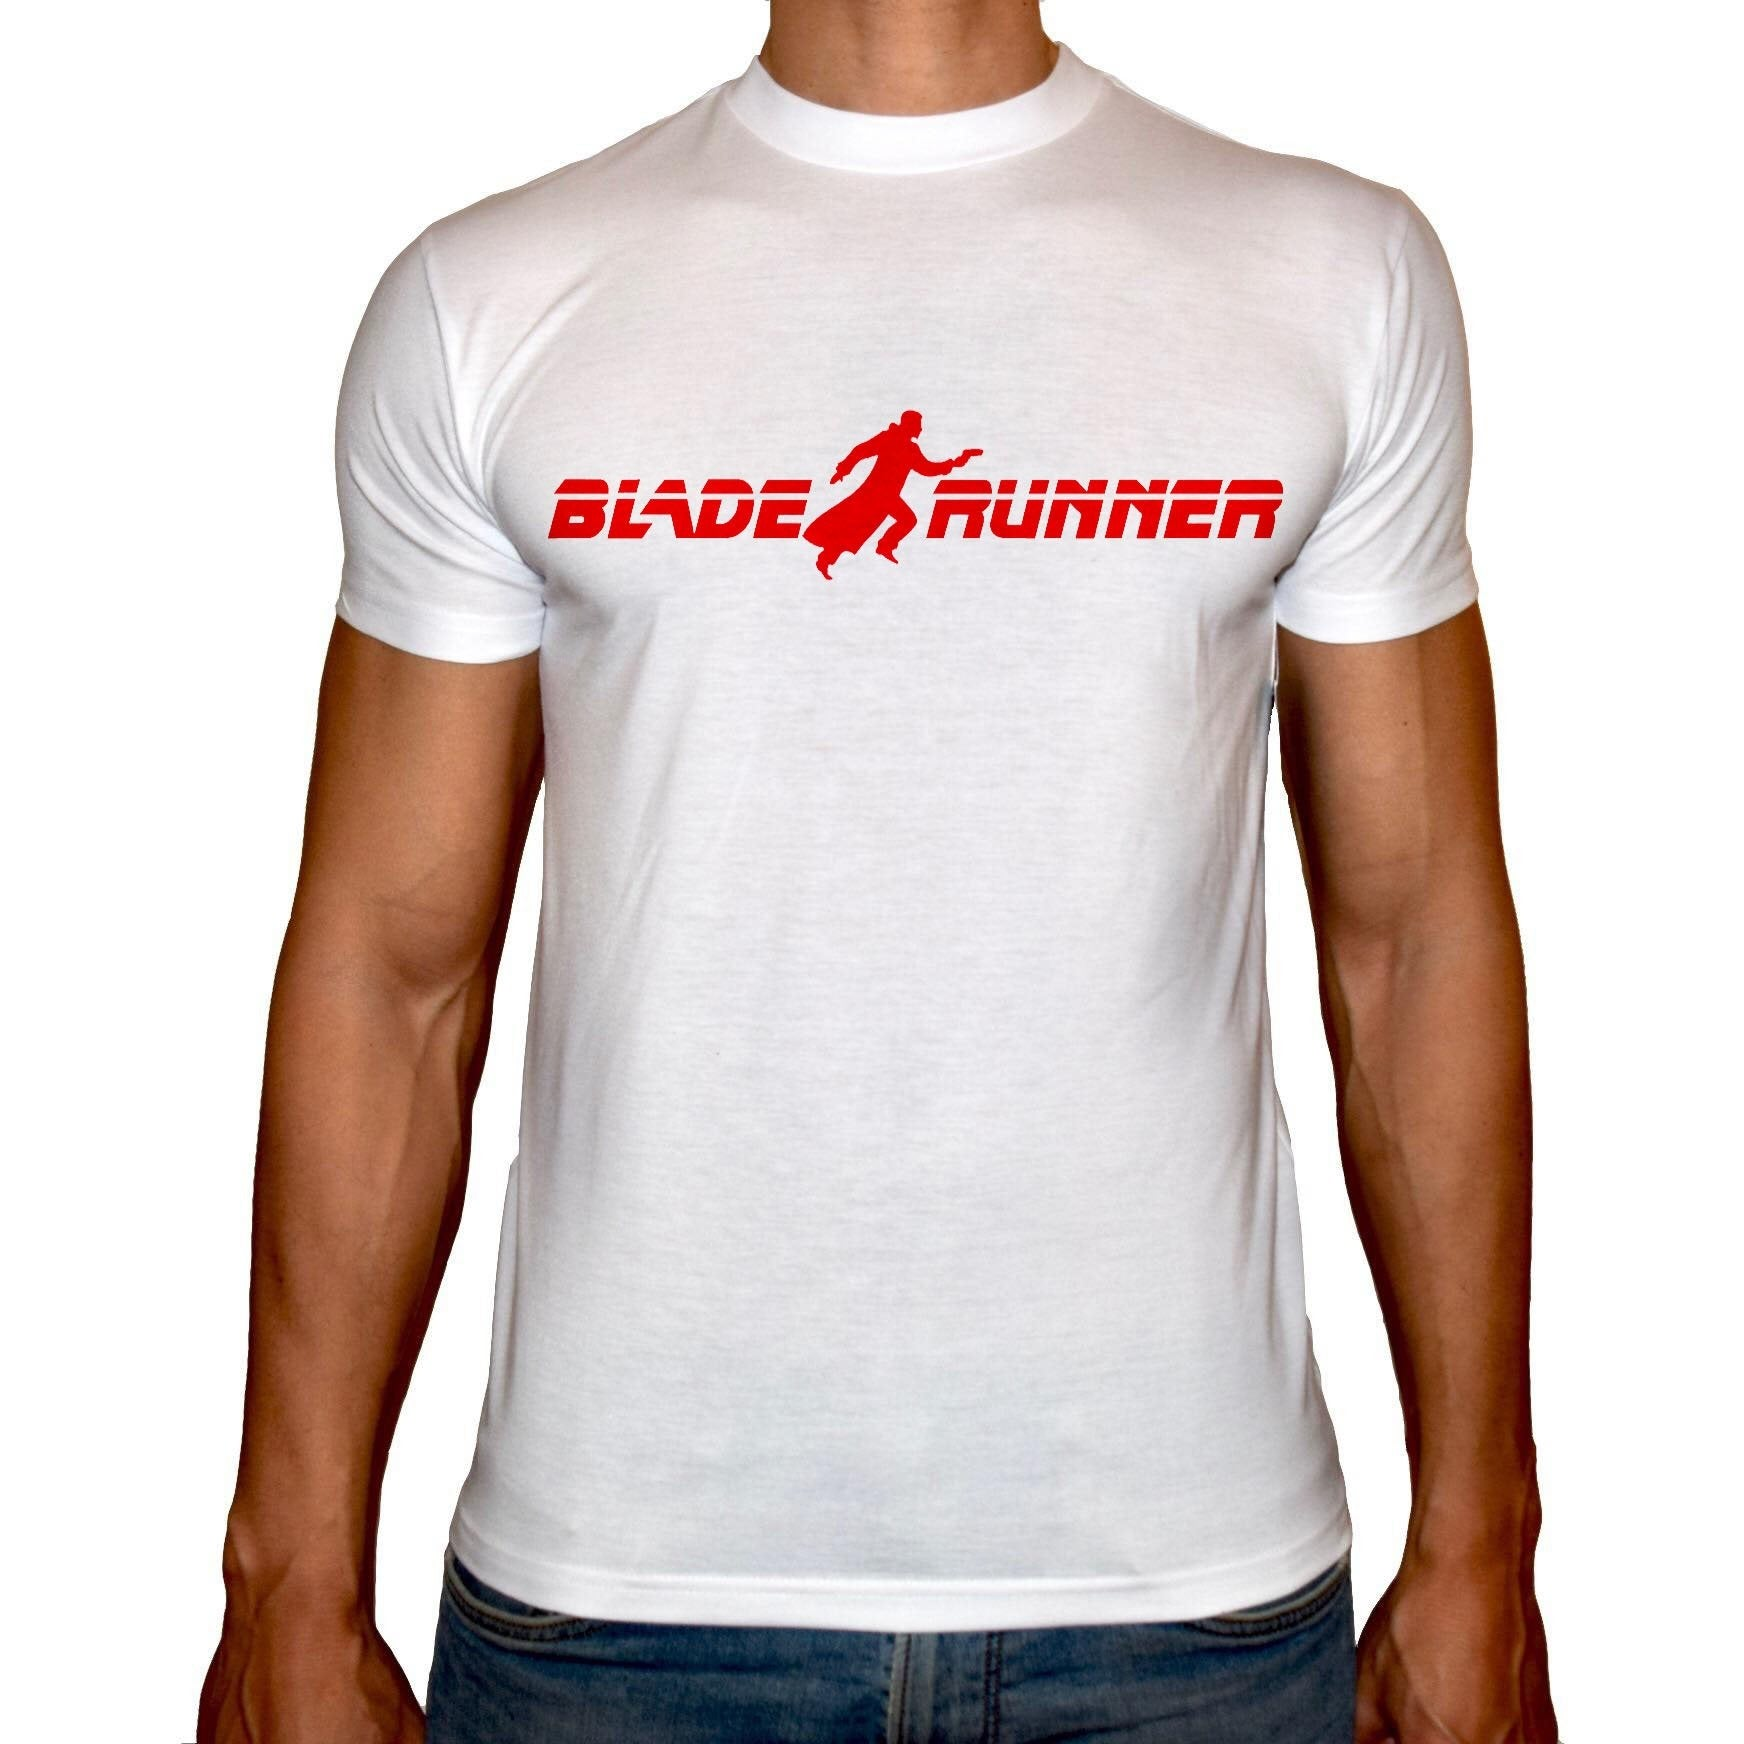 Phoenix WHITE Round Neck Printed T-Shirt Men (Blade runner)